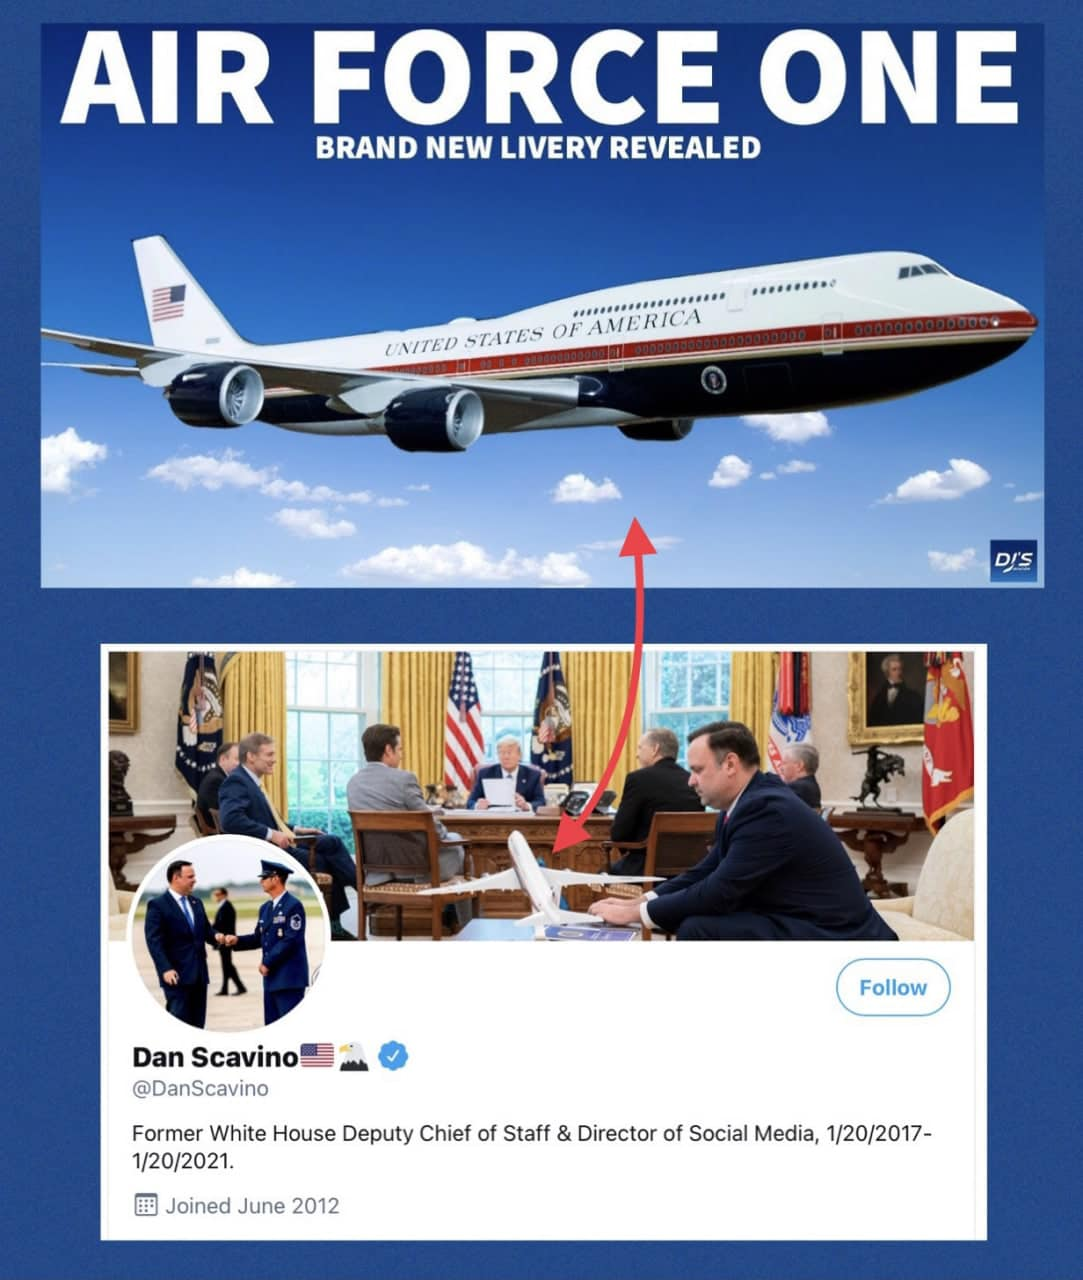 May be an image of 1 person and text that says 'AIR FORCE ONE BRAND NEW LIVERY REVEALED ....,,,,,,,,,, UNITED STATES FAMERICA DI'S Dan Scavino @DanScavino Follow Former White House Deputy Chief of Staff 1/20/2021. å Joined June 2012 Director of Social Media, 1/20/2017-'